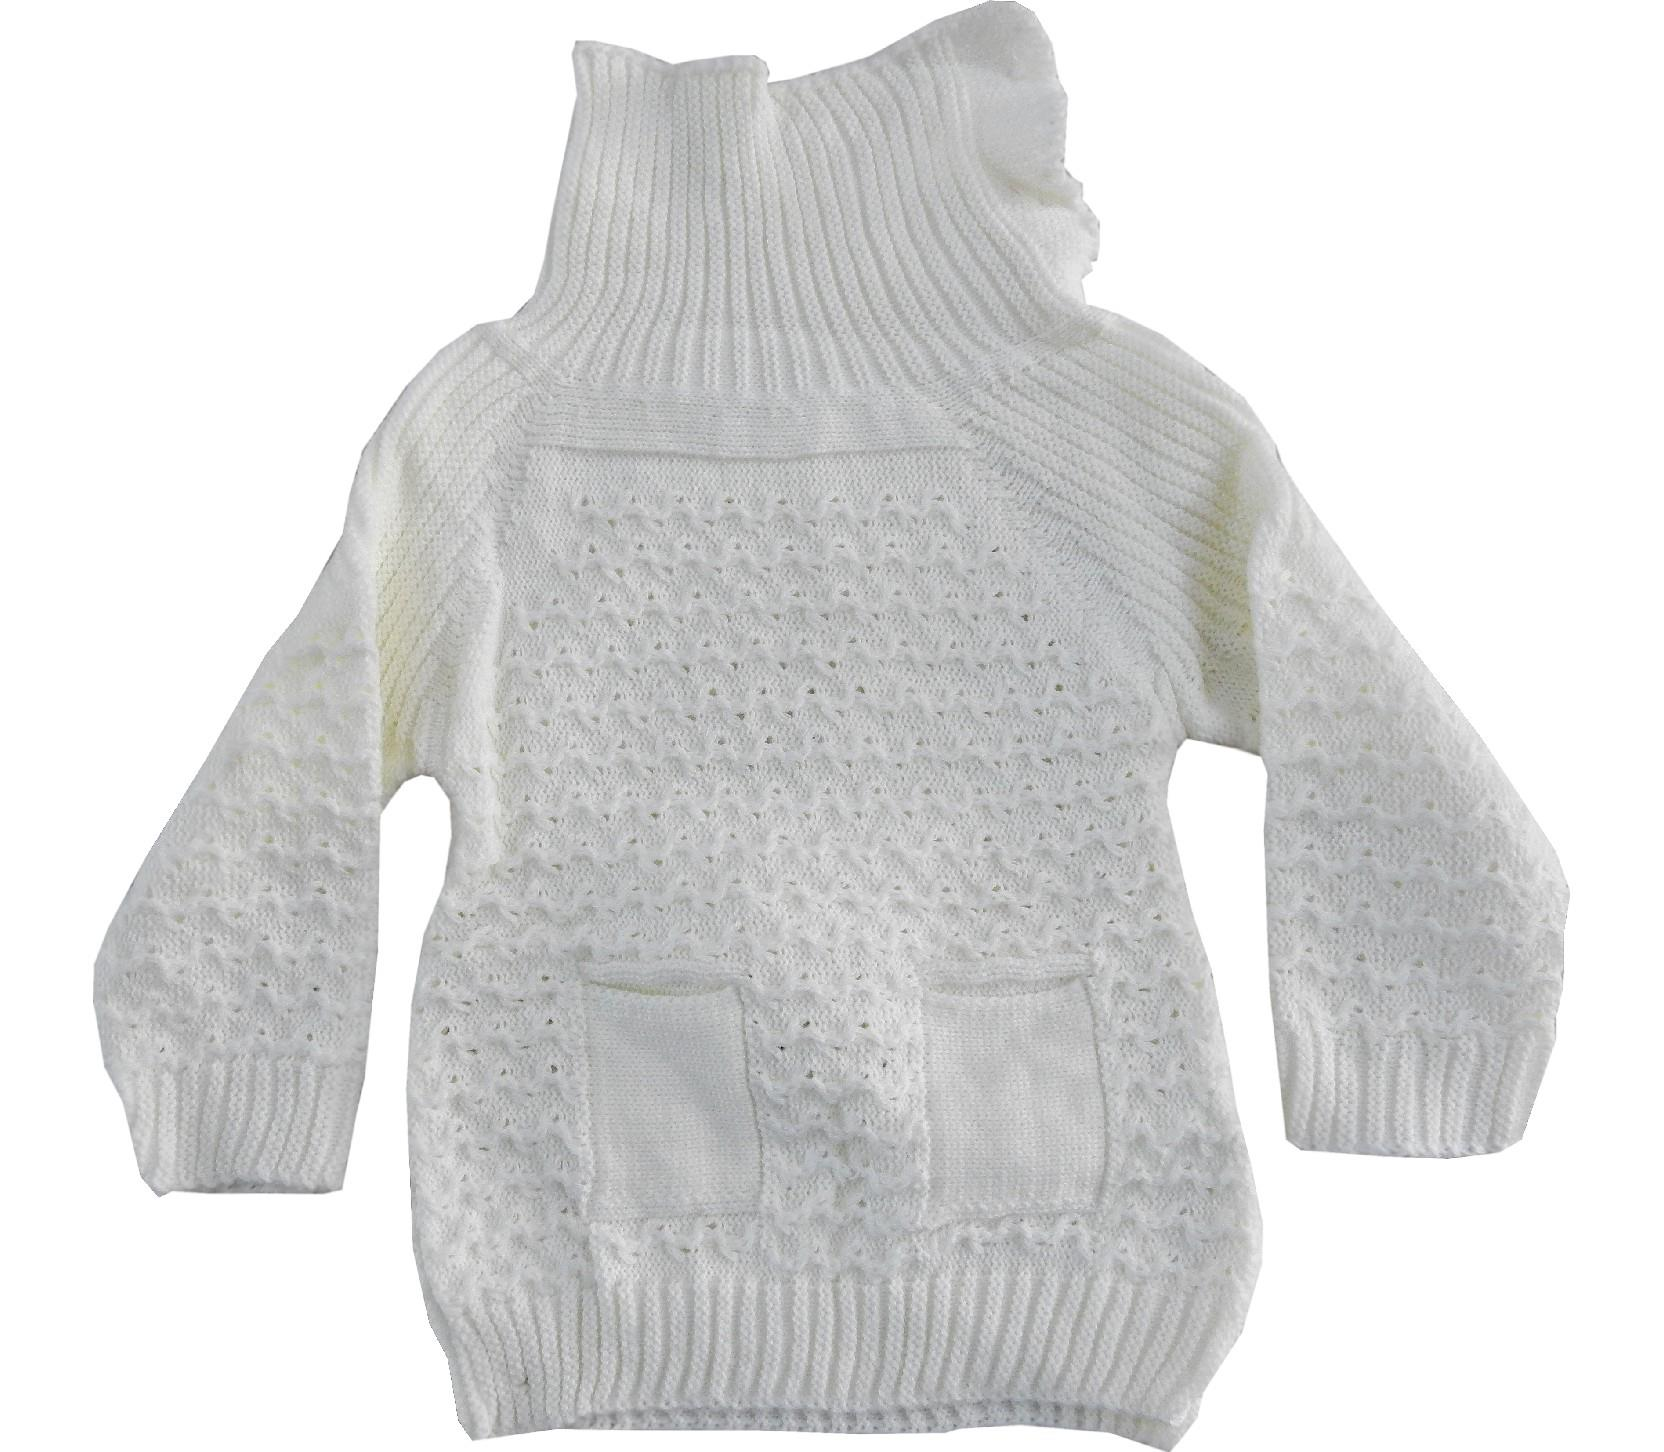 WHOLESALE KNITTED TURTLENECK DESIGN SWEATER PULLOVER FOR GIRL (3-5-7 AGE)